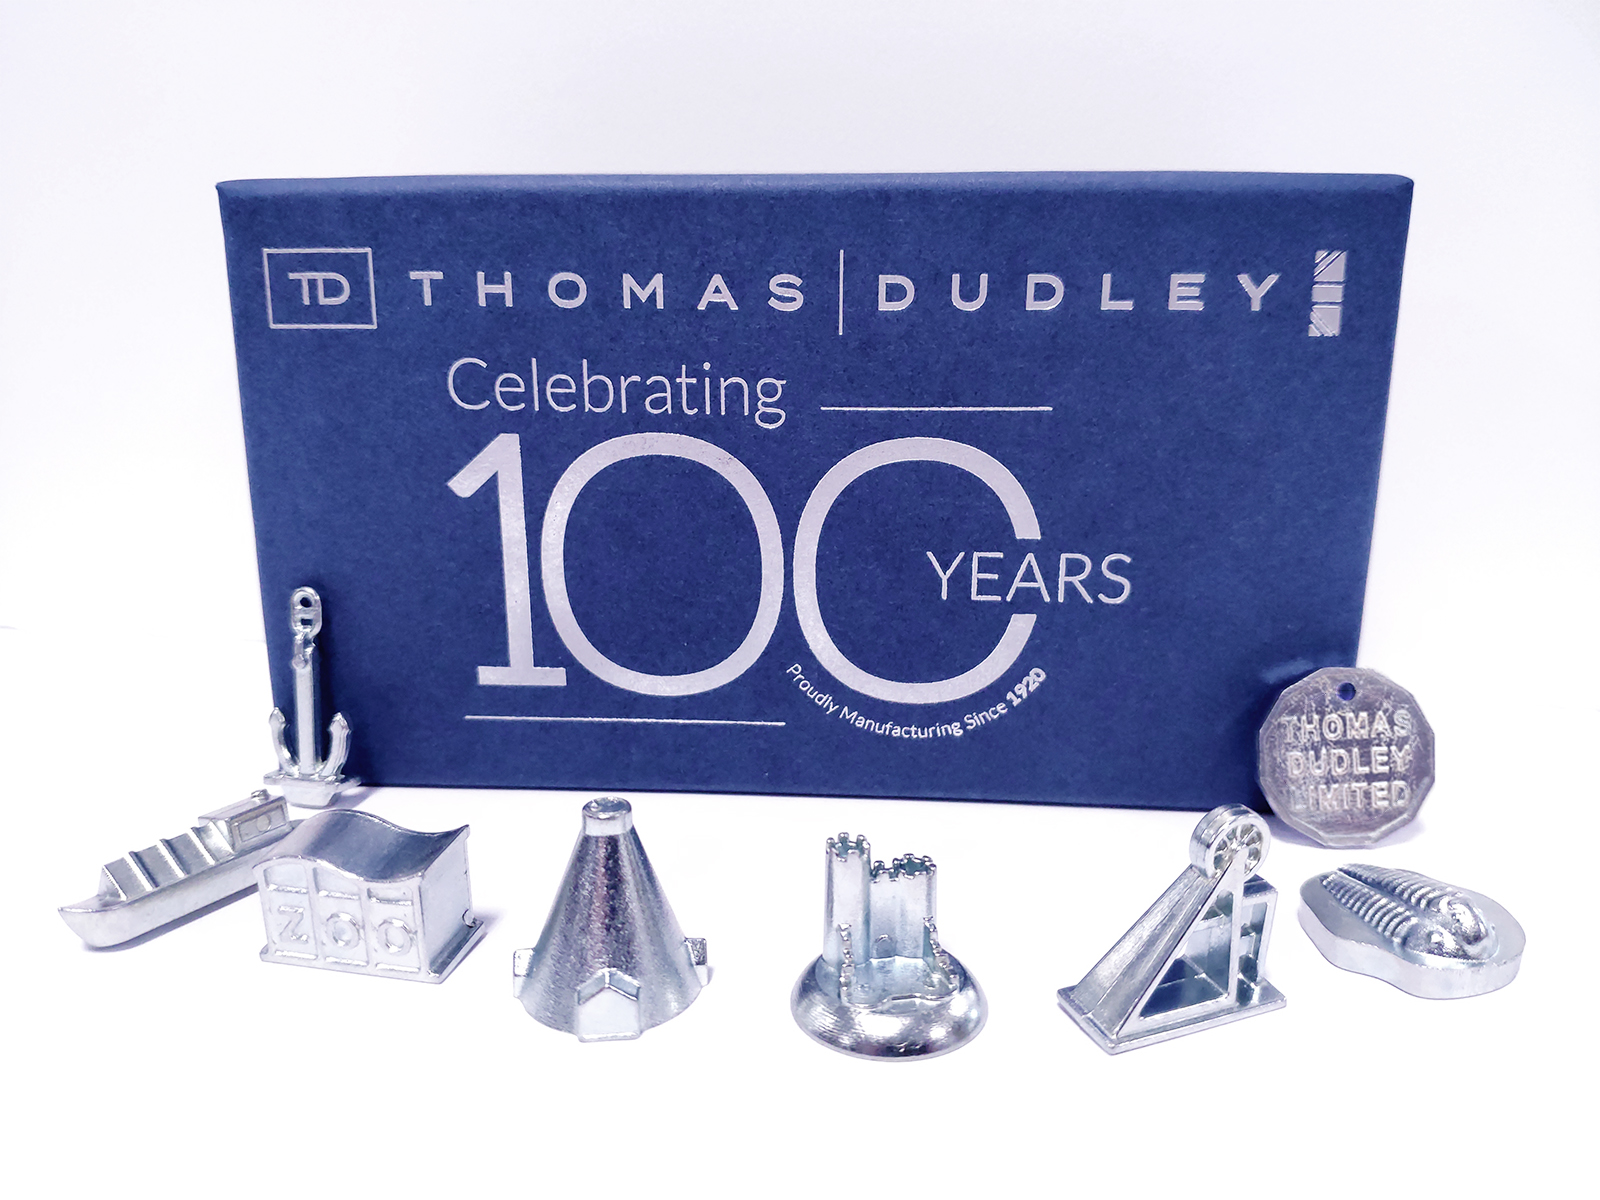 Thomas Dudley 100 Years Game Tokens